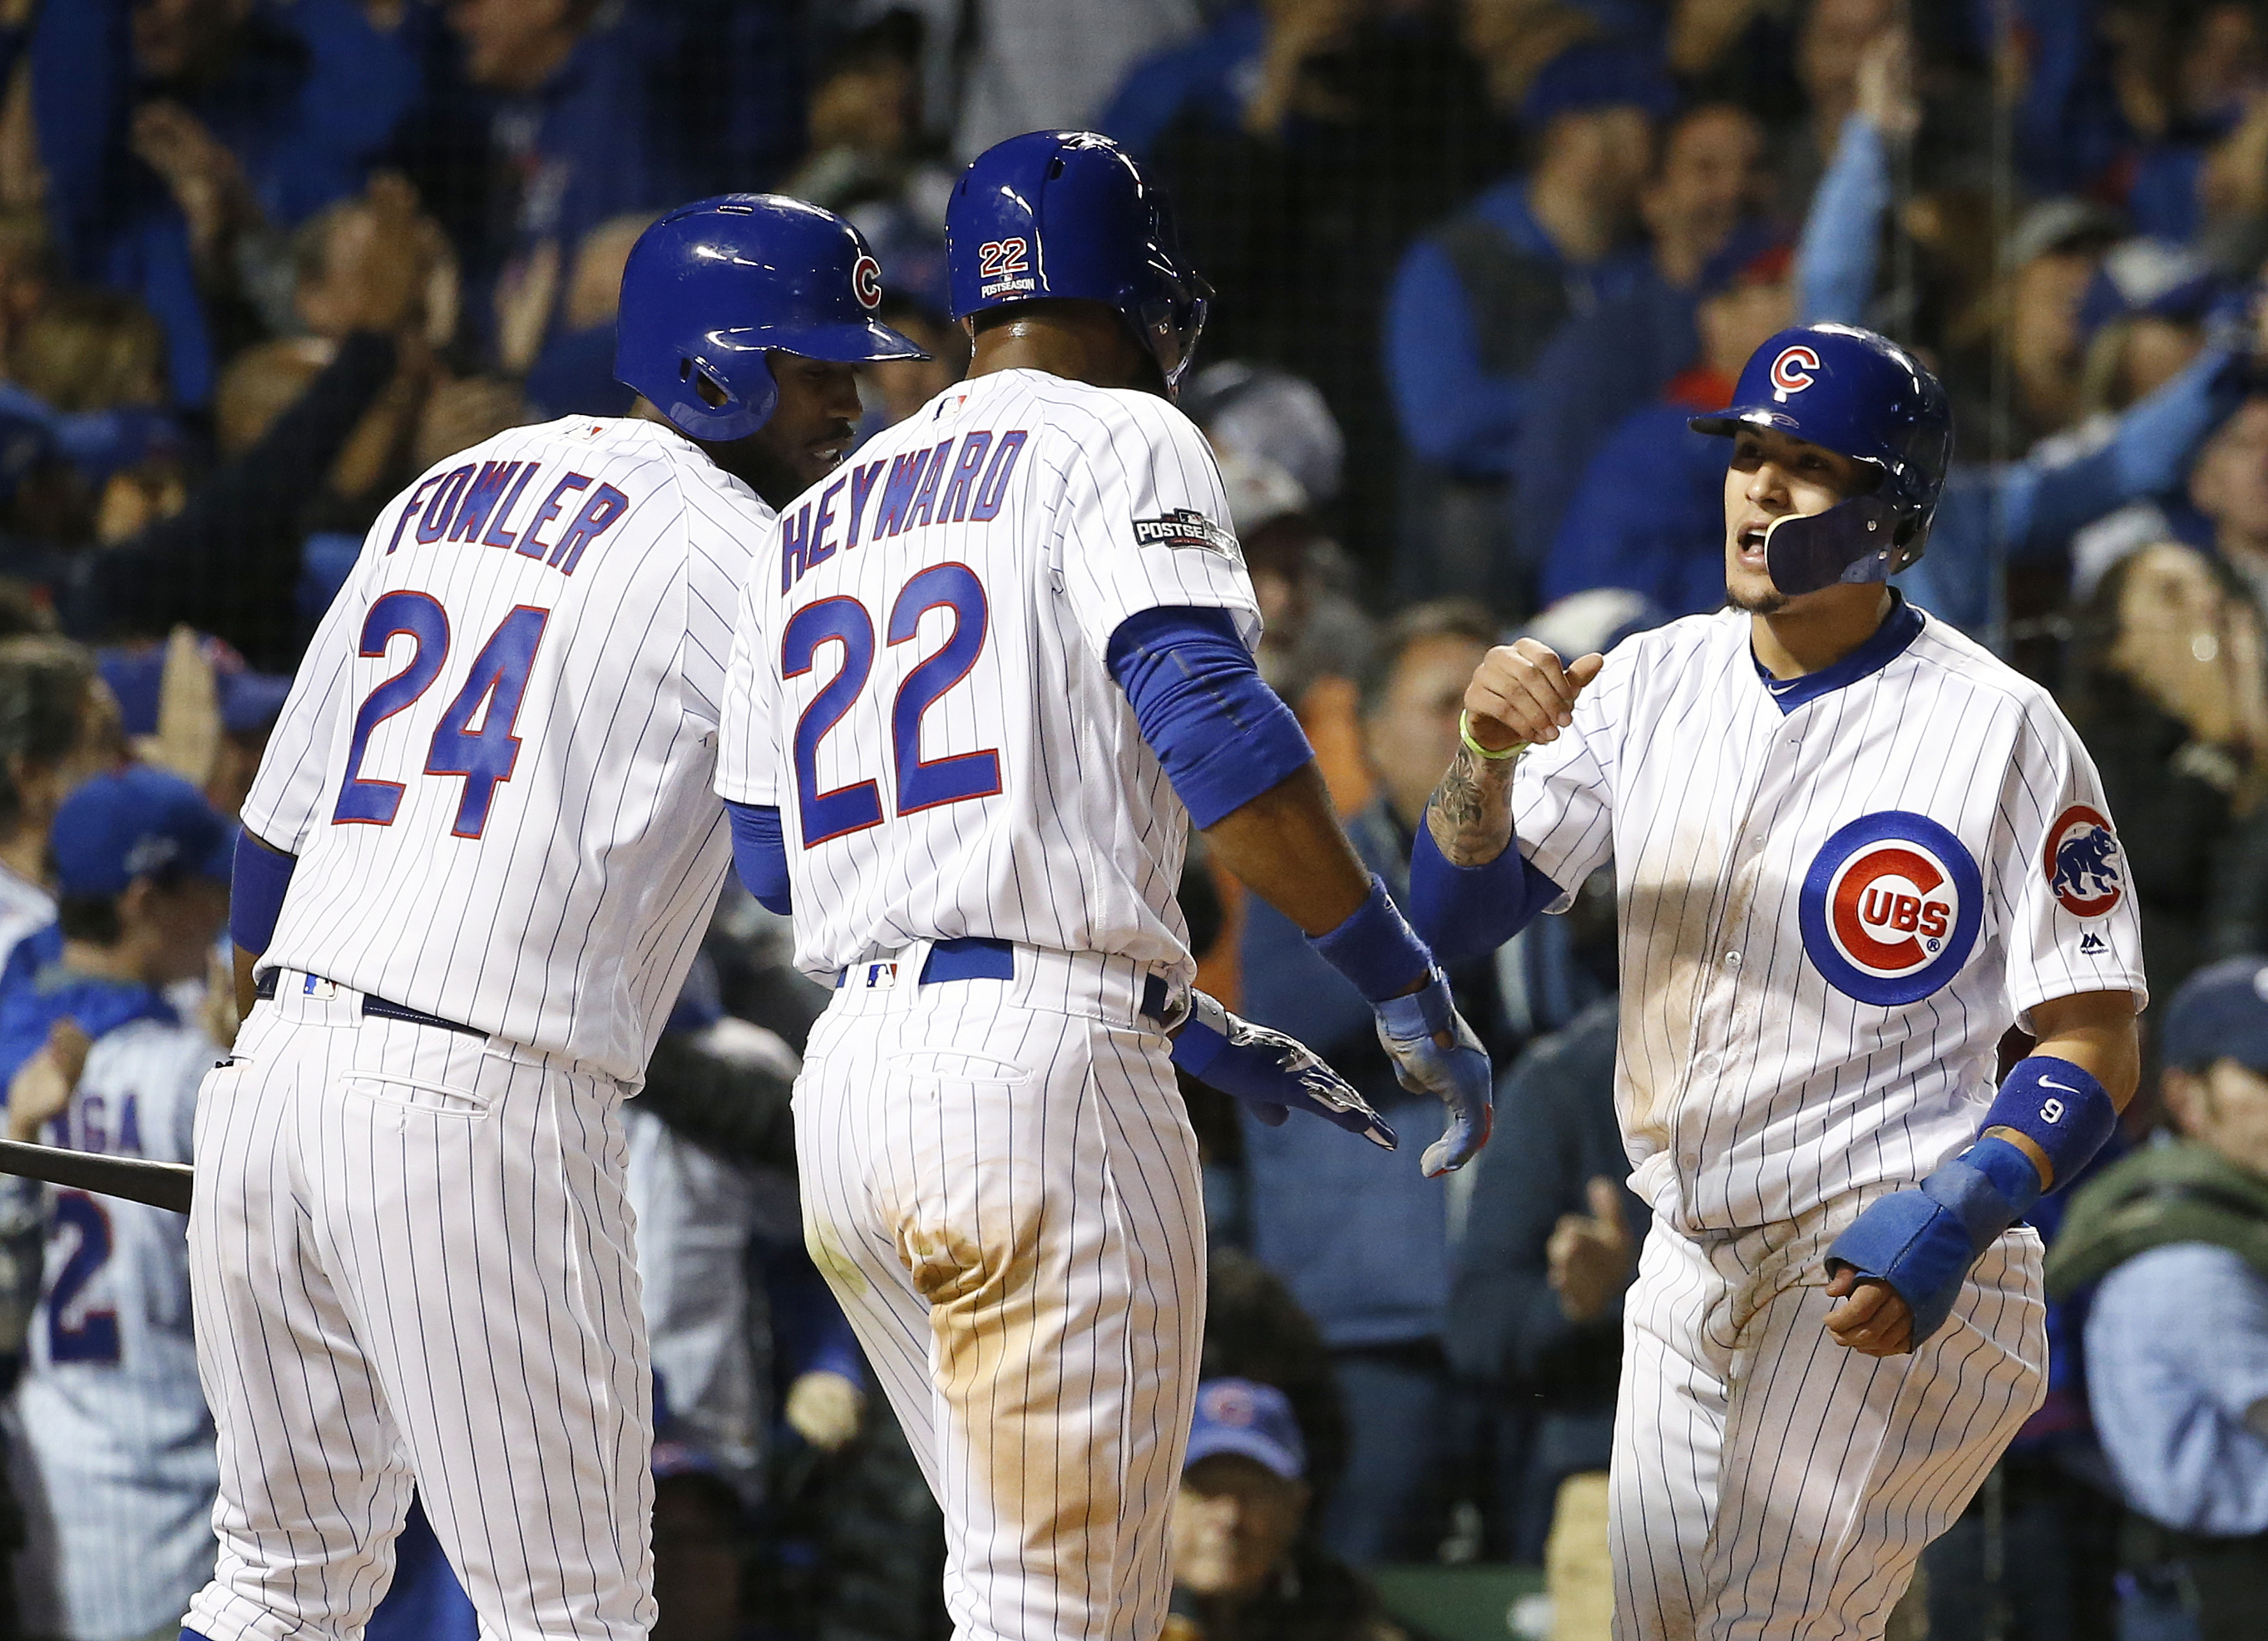 Chicago Cubs' Javier Baez celebrates with Dexter Fowler (24) and Jason Heyward (22) after sliding safely into home after a single by Kyle Hendricks  in the second inning of Game 2 of baseball's National League Division Series, Saturday, Oct. 8, 2016, in C